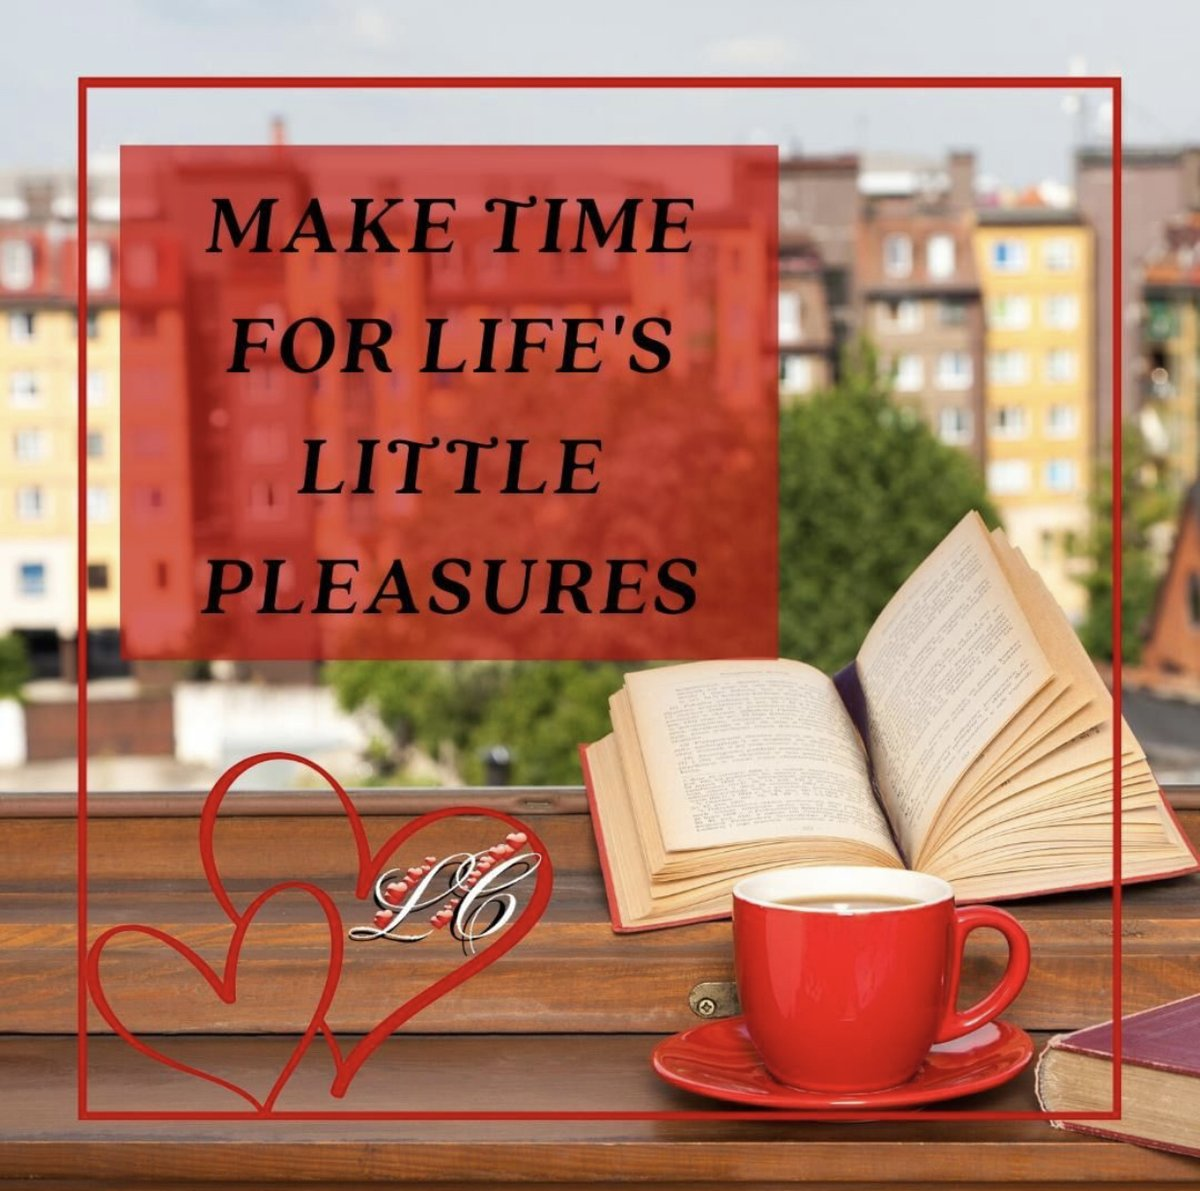 Don't forget... Make time for life's little pleasures ❤️   https://t.co/2k976xU01y #bookworm #bookaholic #bookish #reading #readingtime #loreleiconfer #romancebooks #booklover #oneclick #oneclickaddict #romanticsuspense #romanticfiction #HEA #KU https://t.co/WsPaZZw5ce